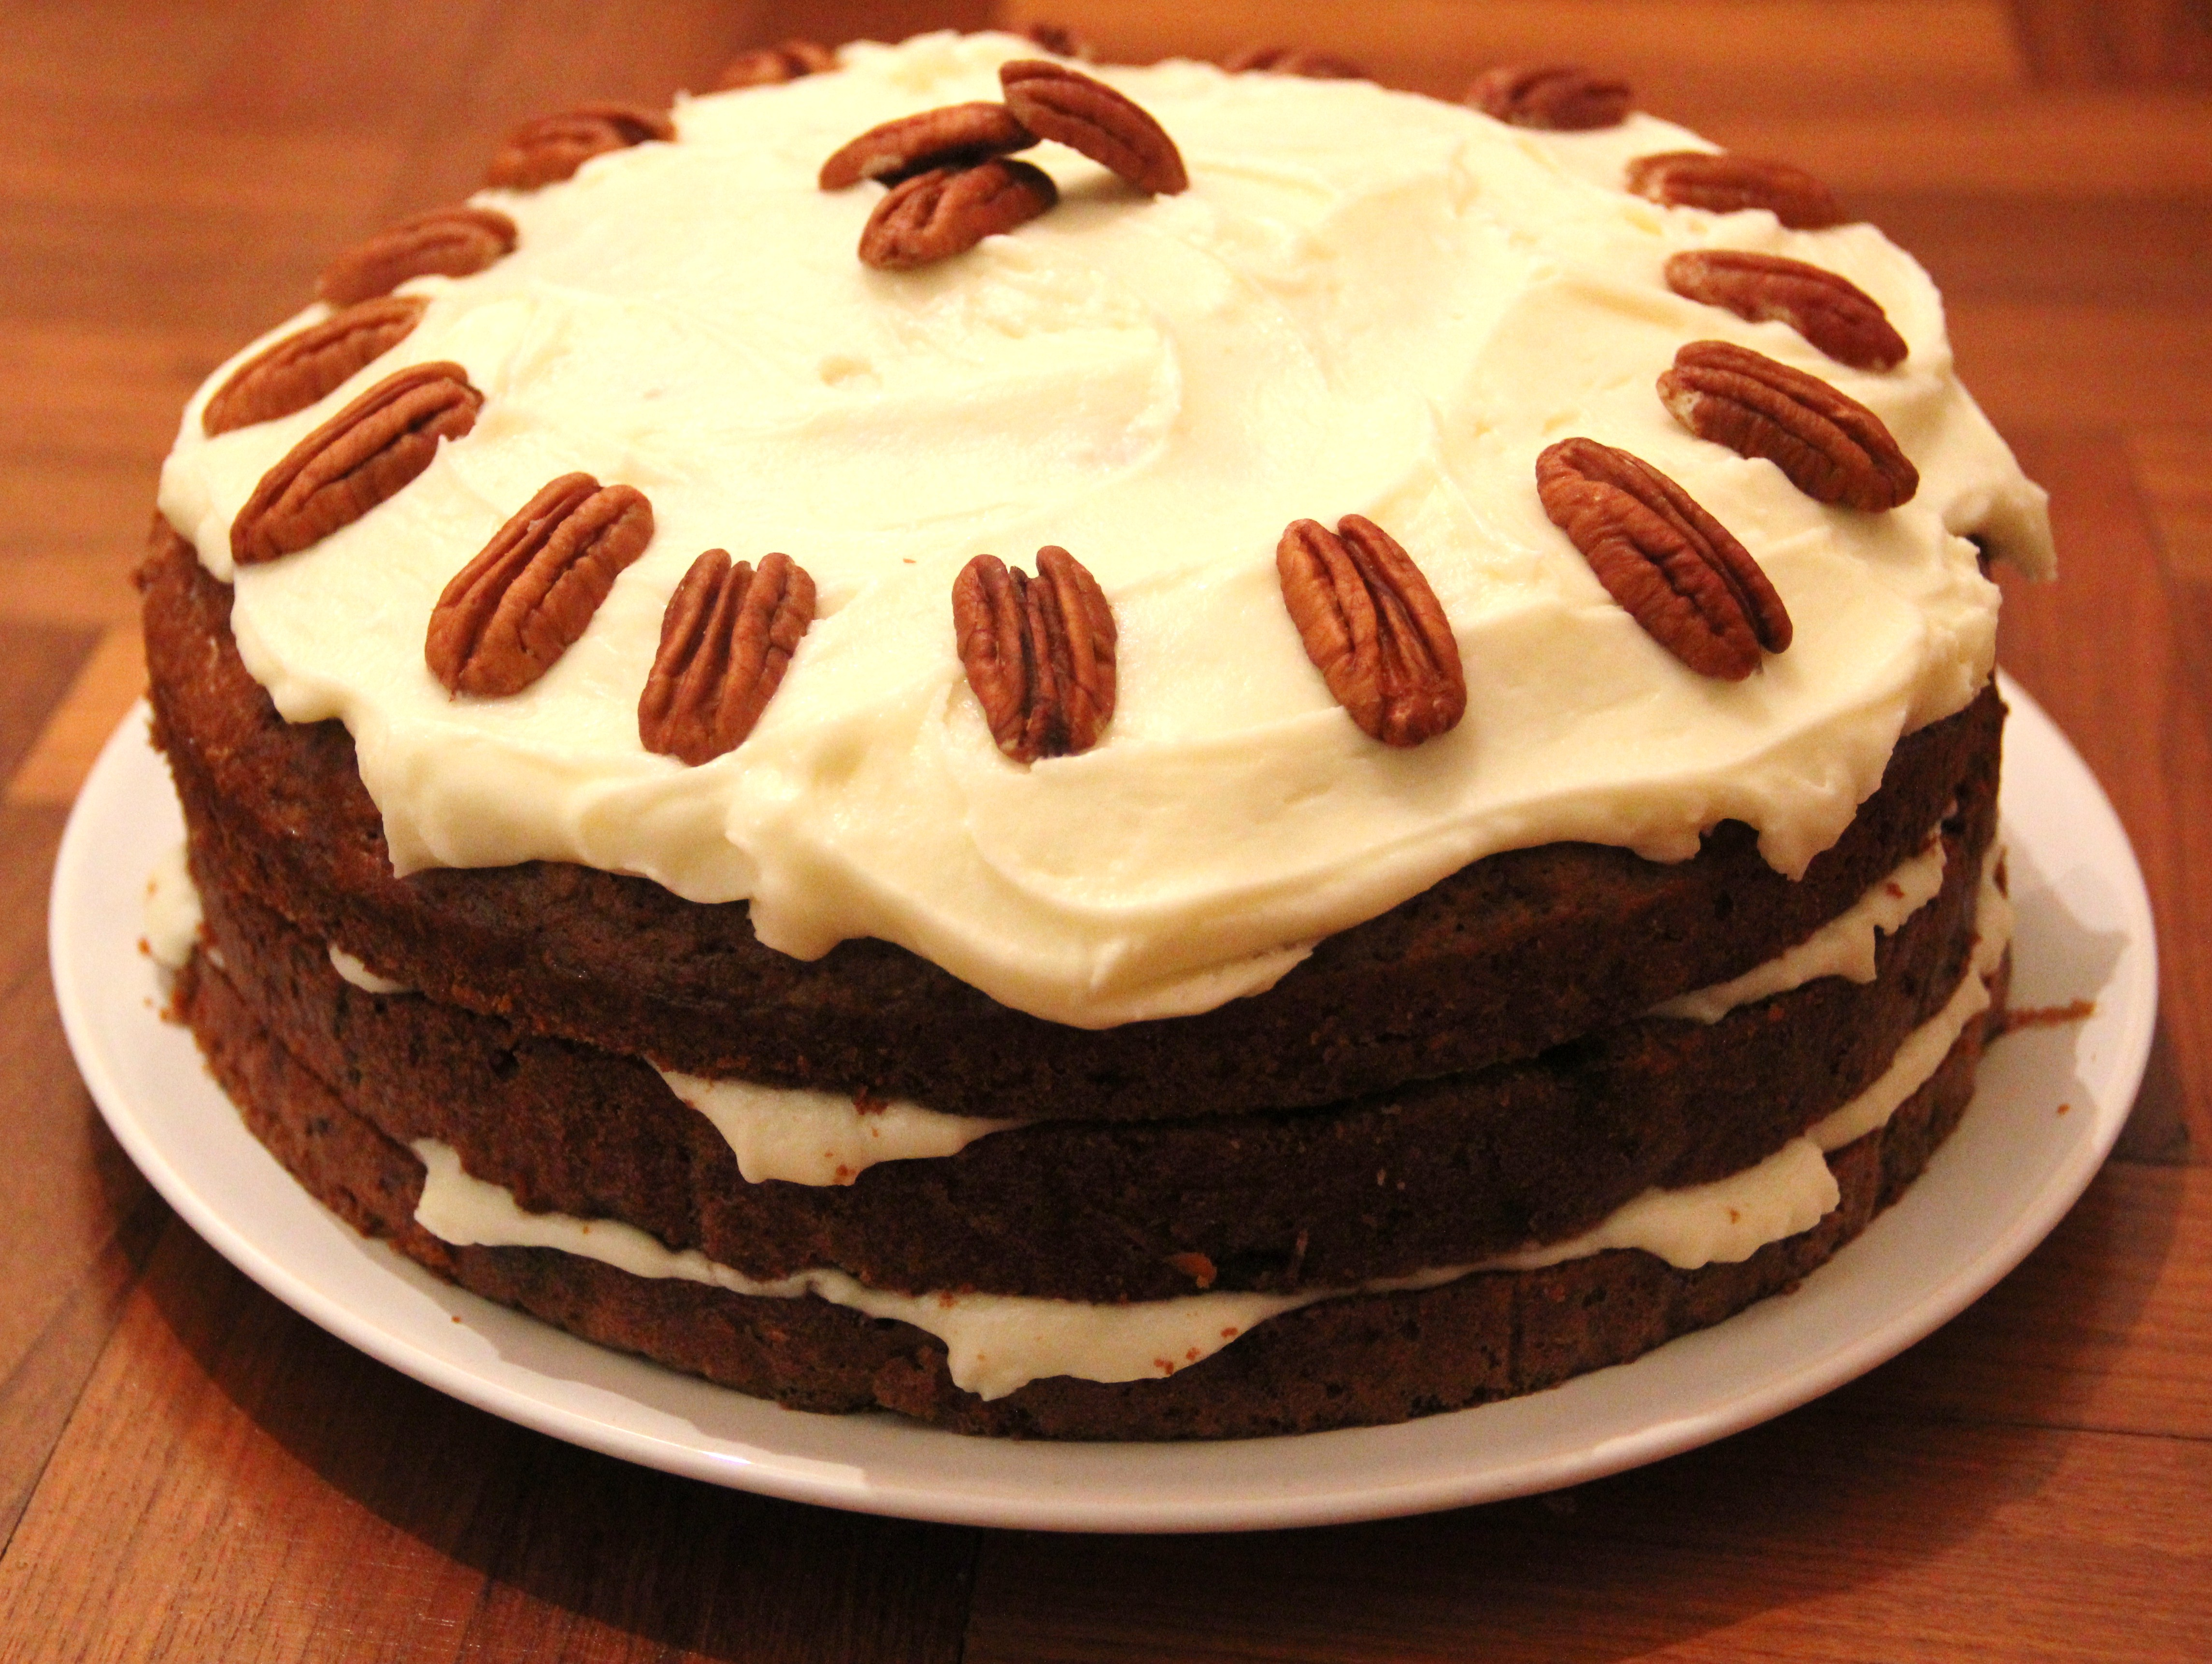 Carrot cake recipe for 23cm tin